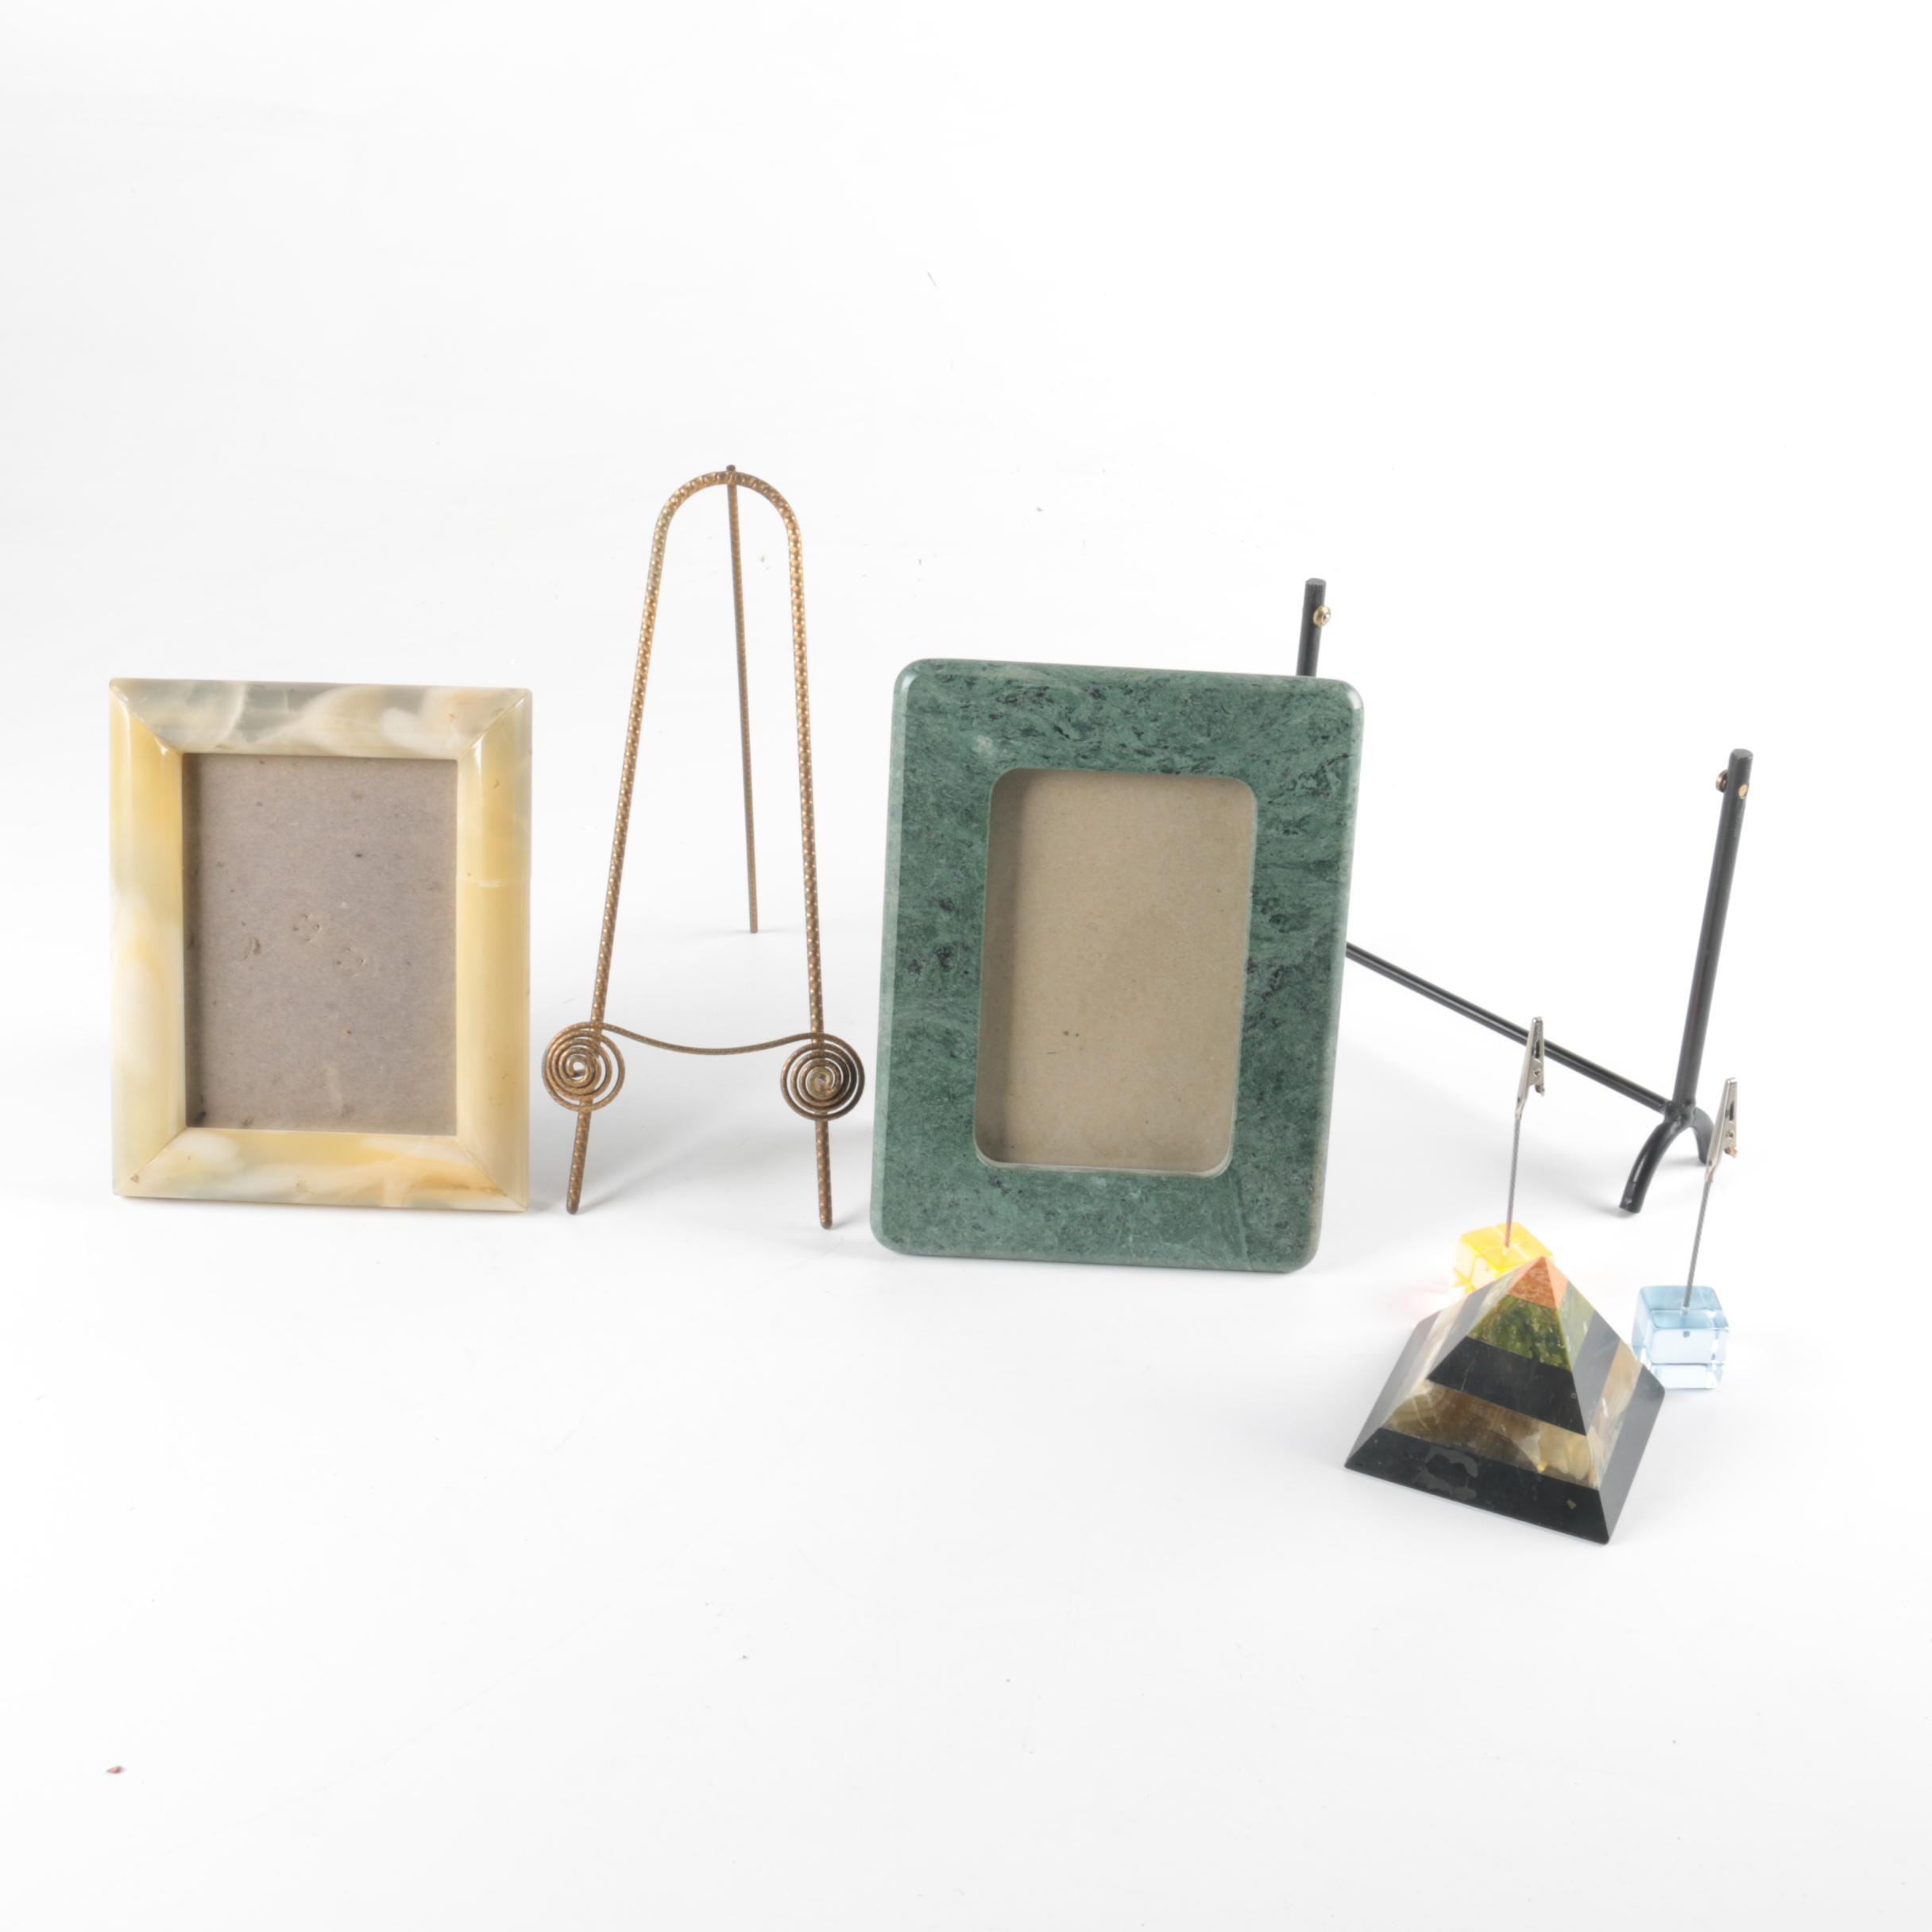 Desk Decor with Frames and Paperweights